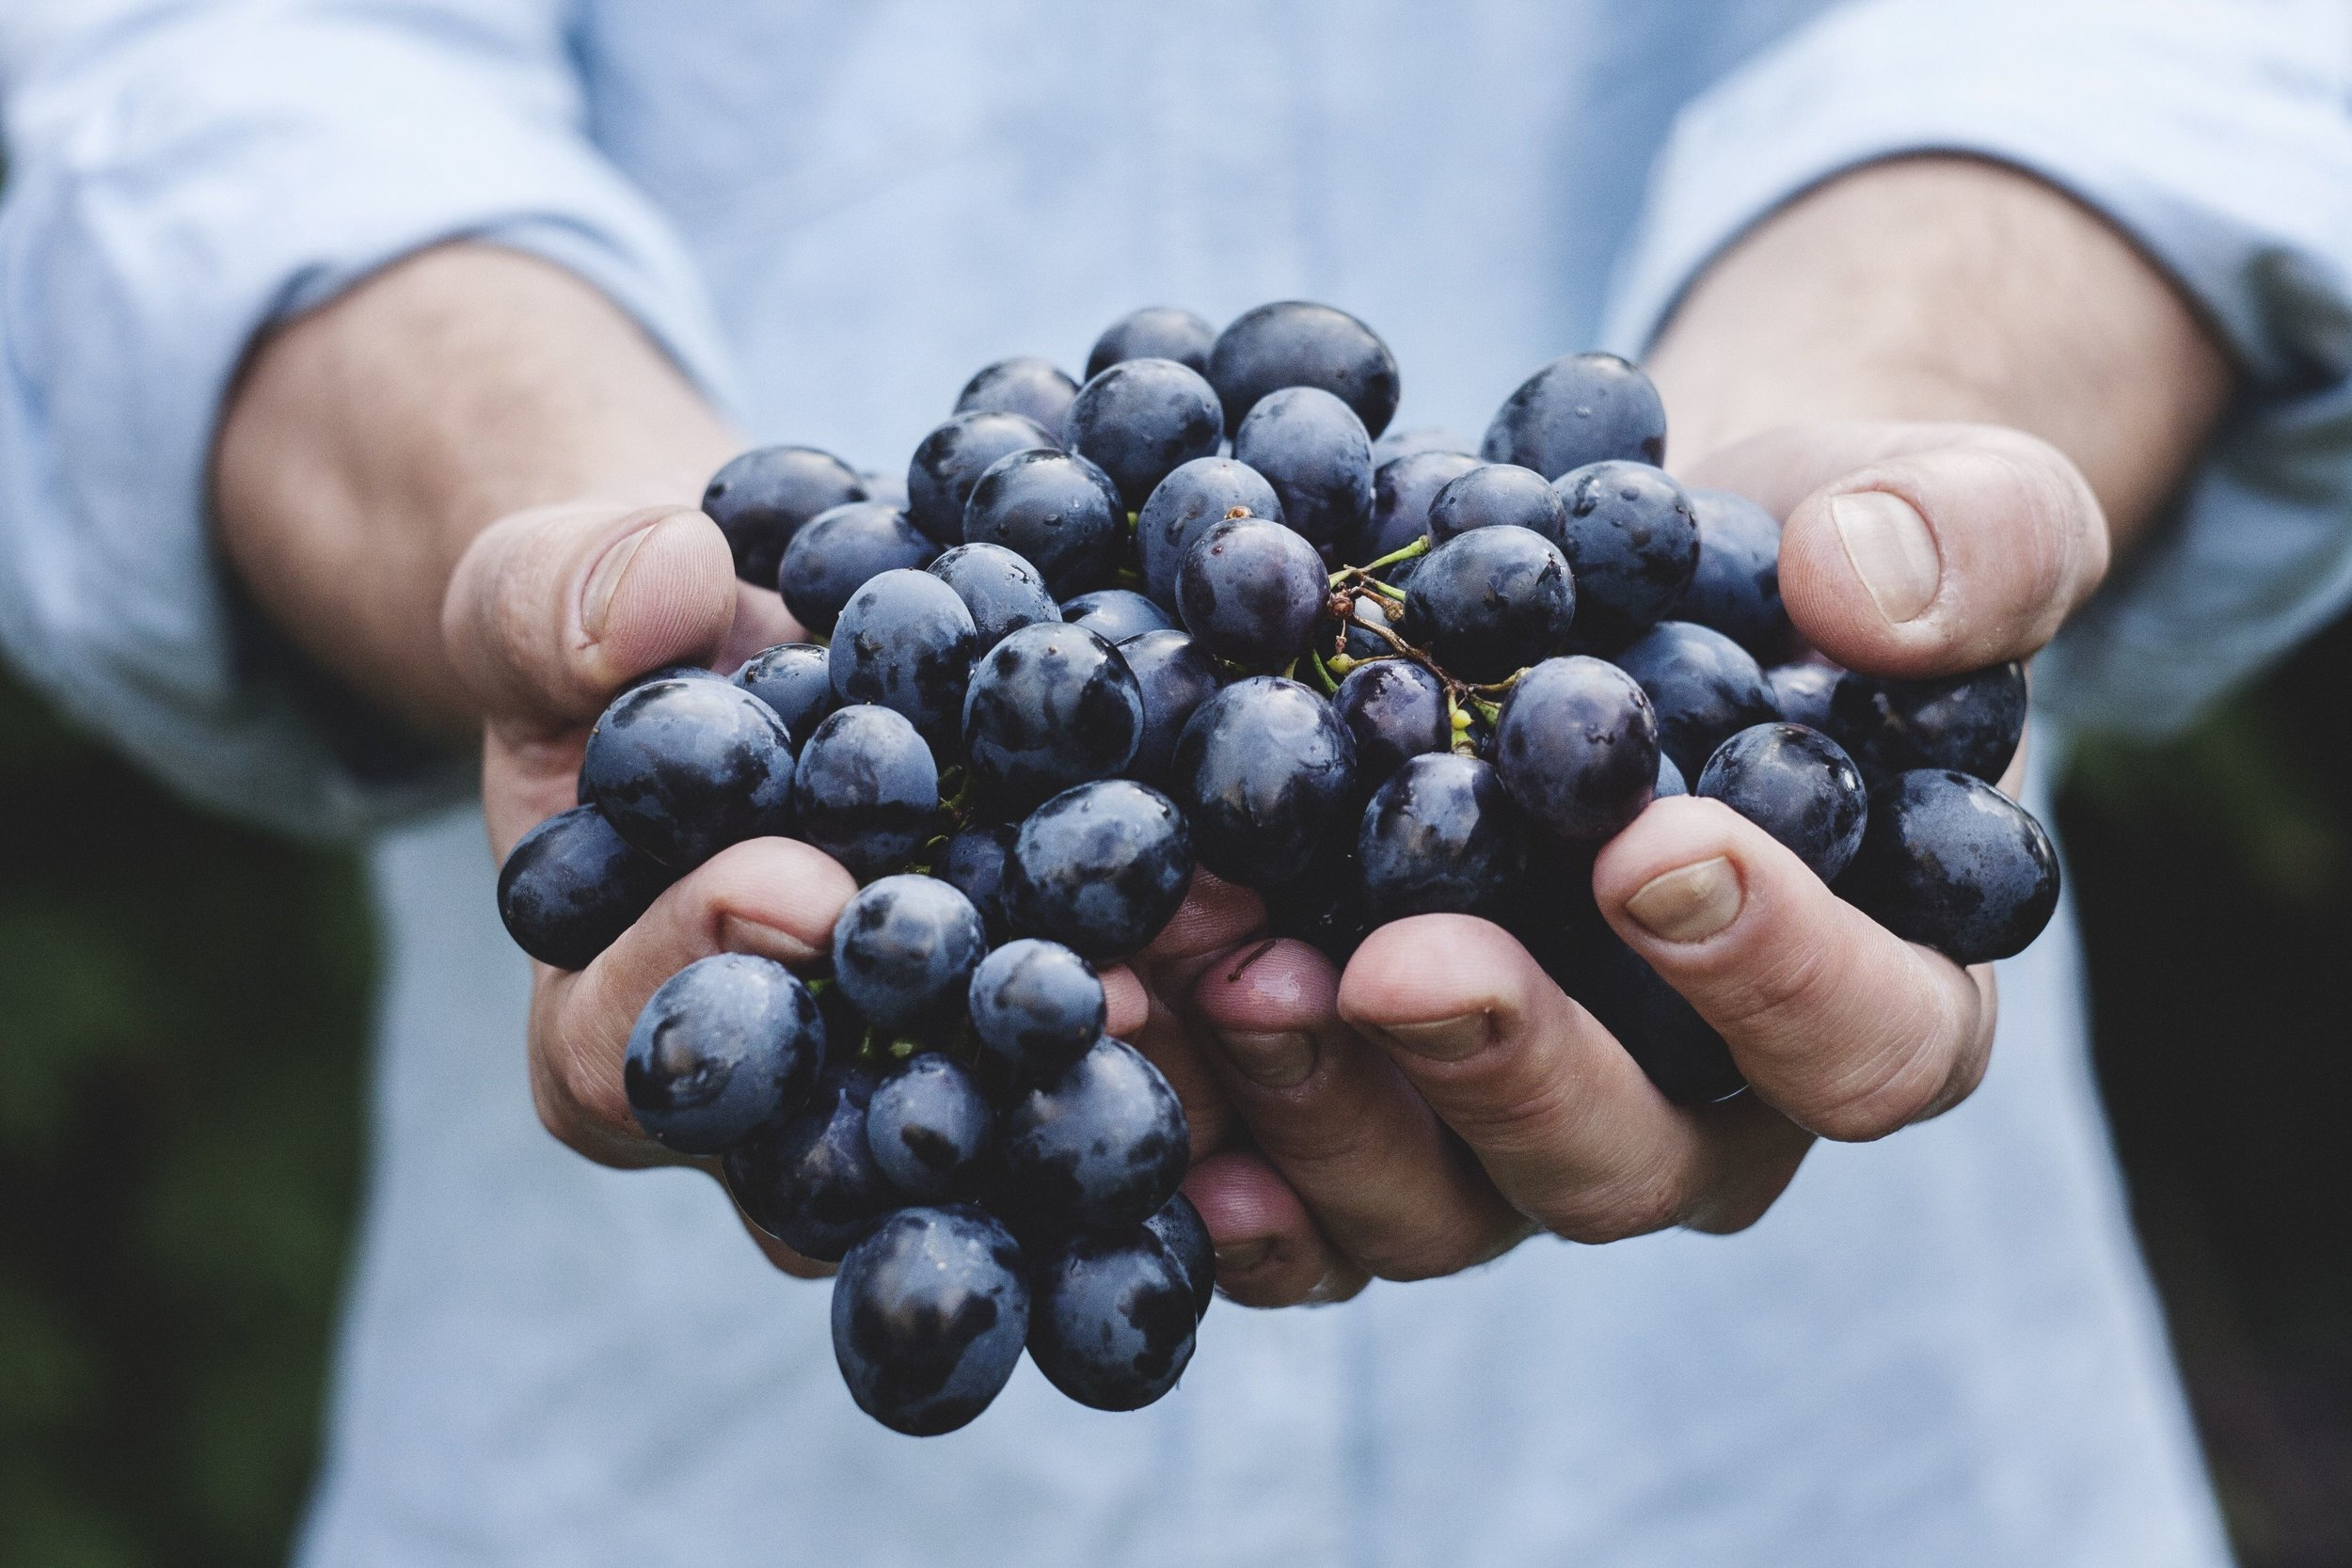 Man Holding Grapes in His Hands.jpg